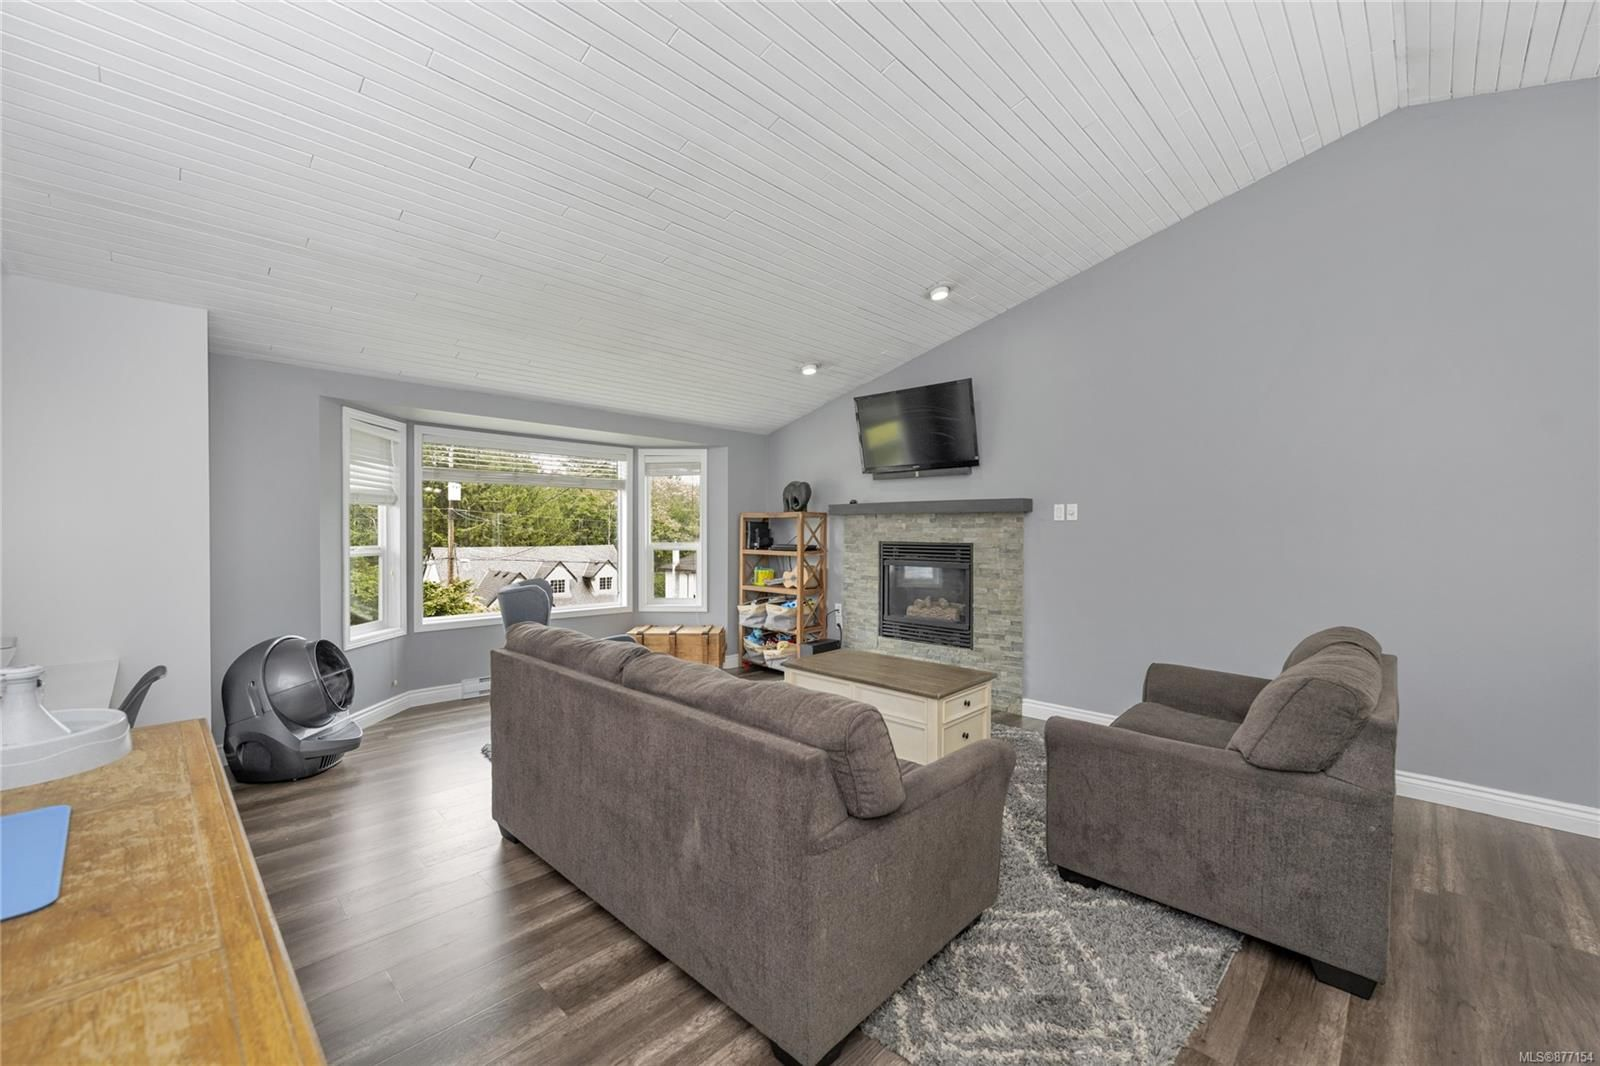 Photo 14: Photos: 2376 Terrace Rd in : ML Shawnigan House for sale (Malahat & Area)  : MLS®# 877154